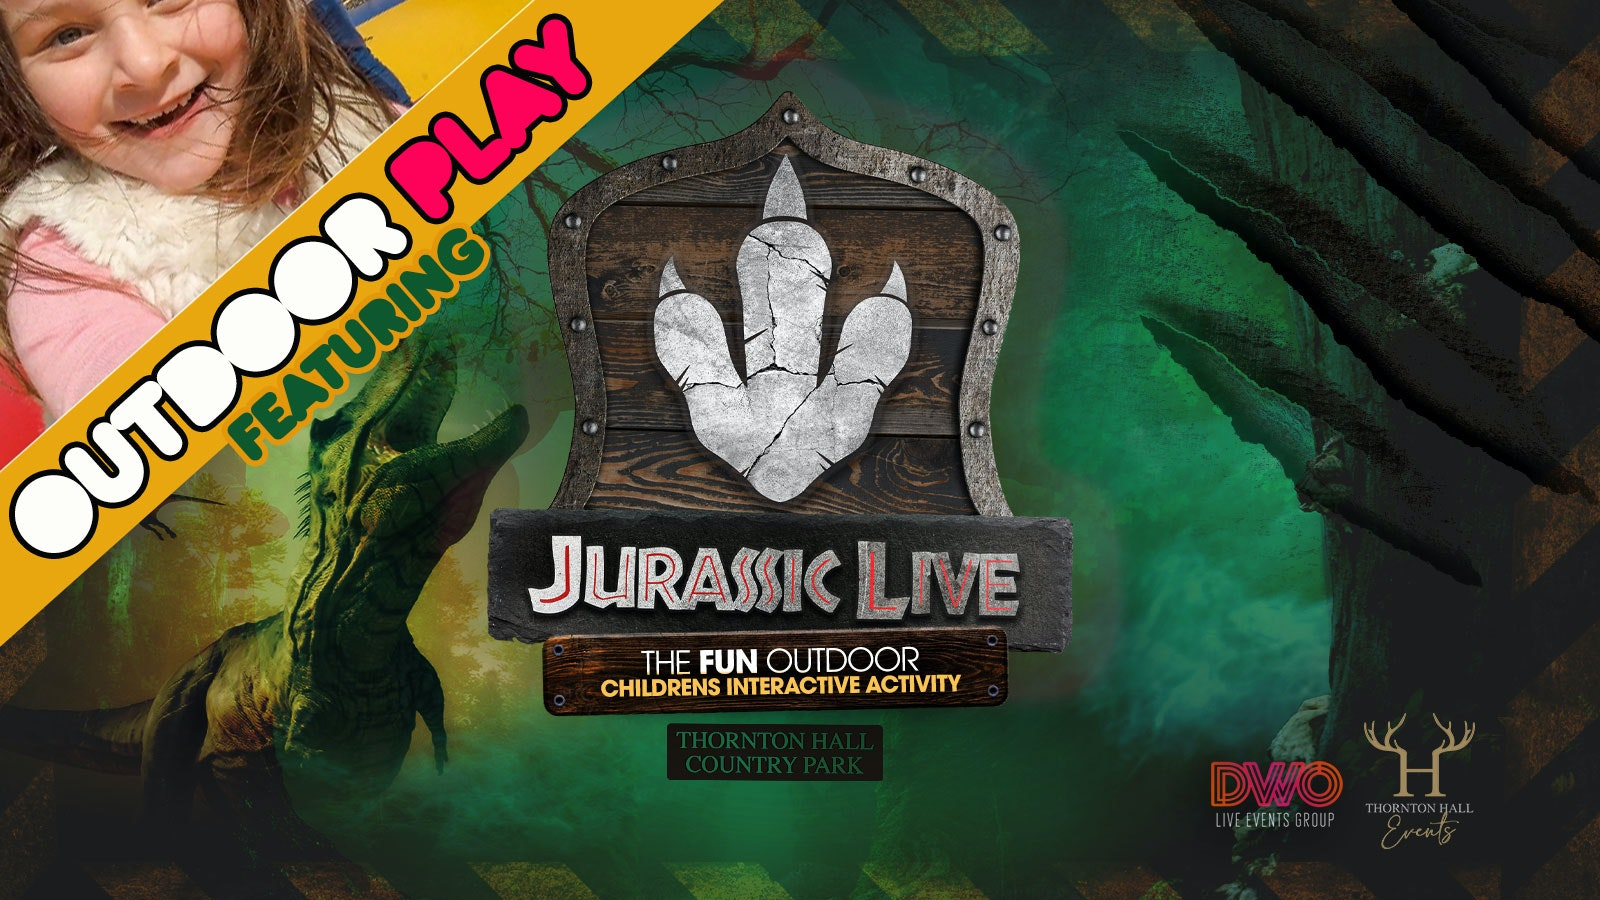 Jurassic Live inc Outdoor Play (Pm) – Sunday 25th April – 2pm